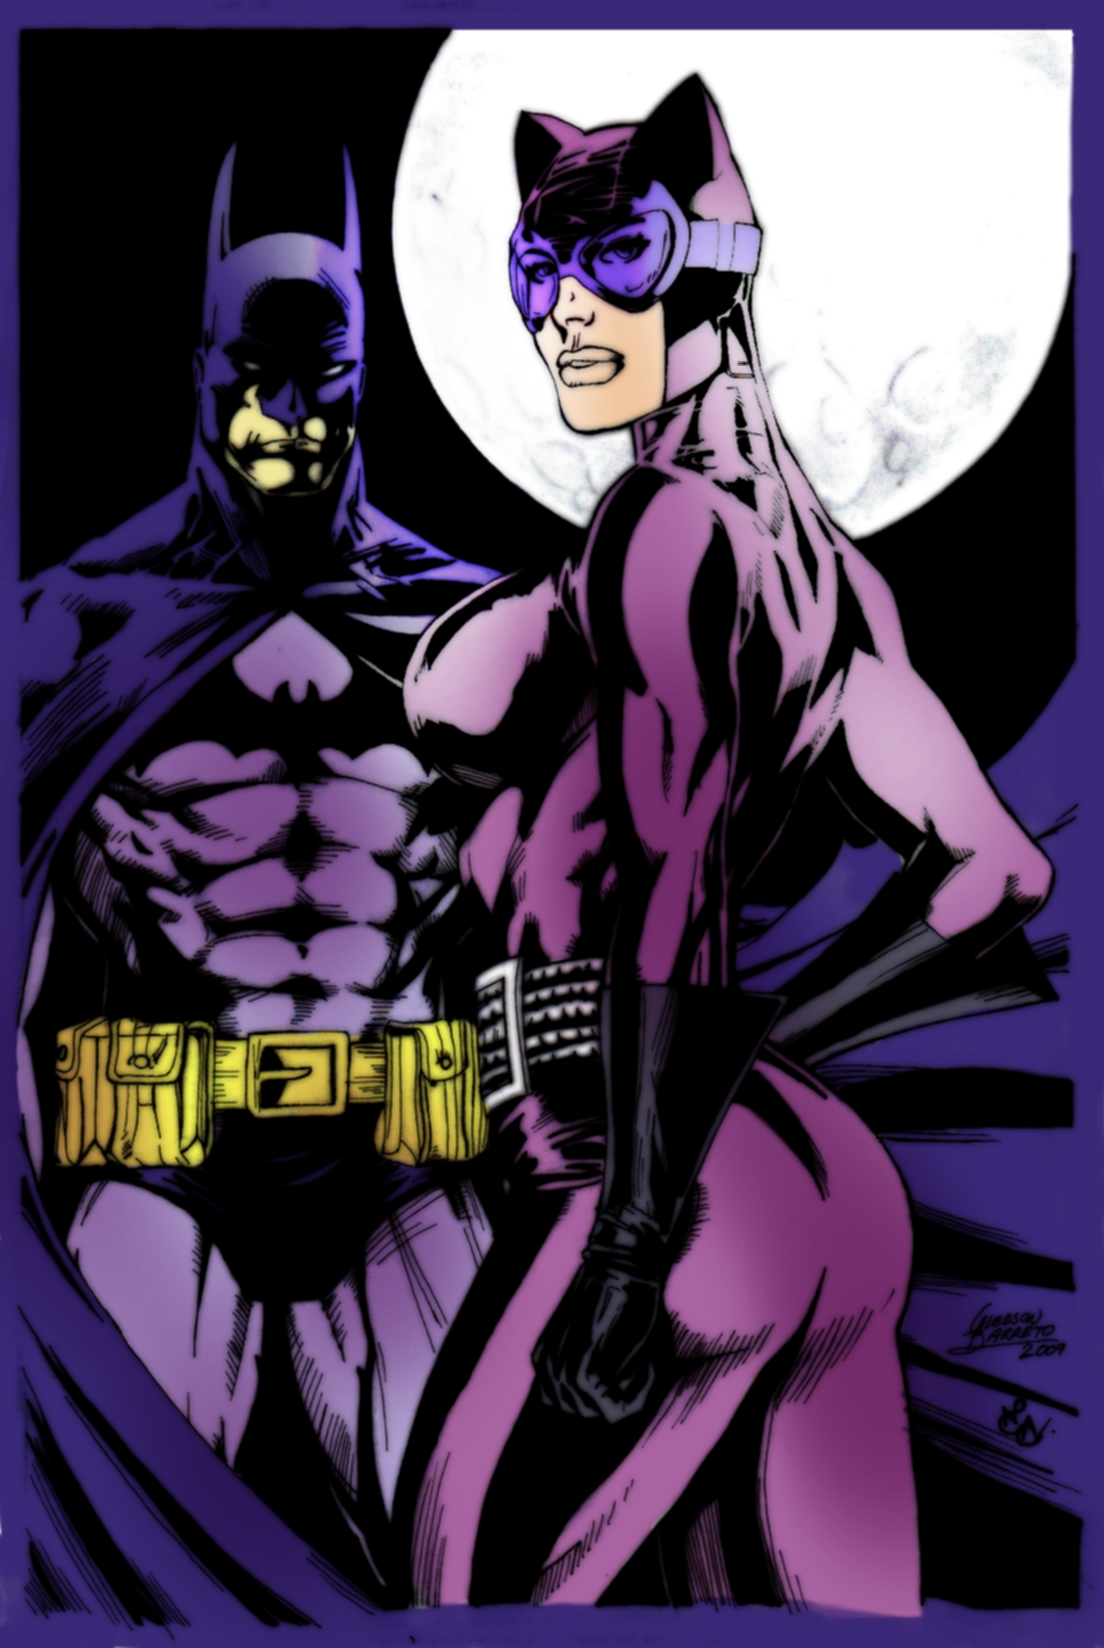 batman and catwoman 4 batman and catwoman 5 batman and catwoman 6 1104x1648